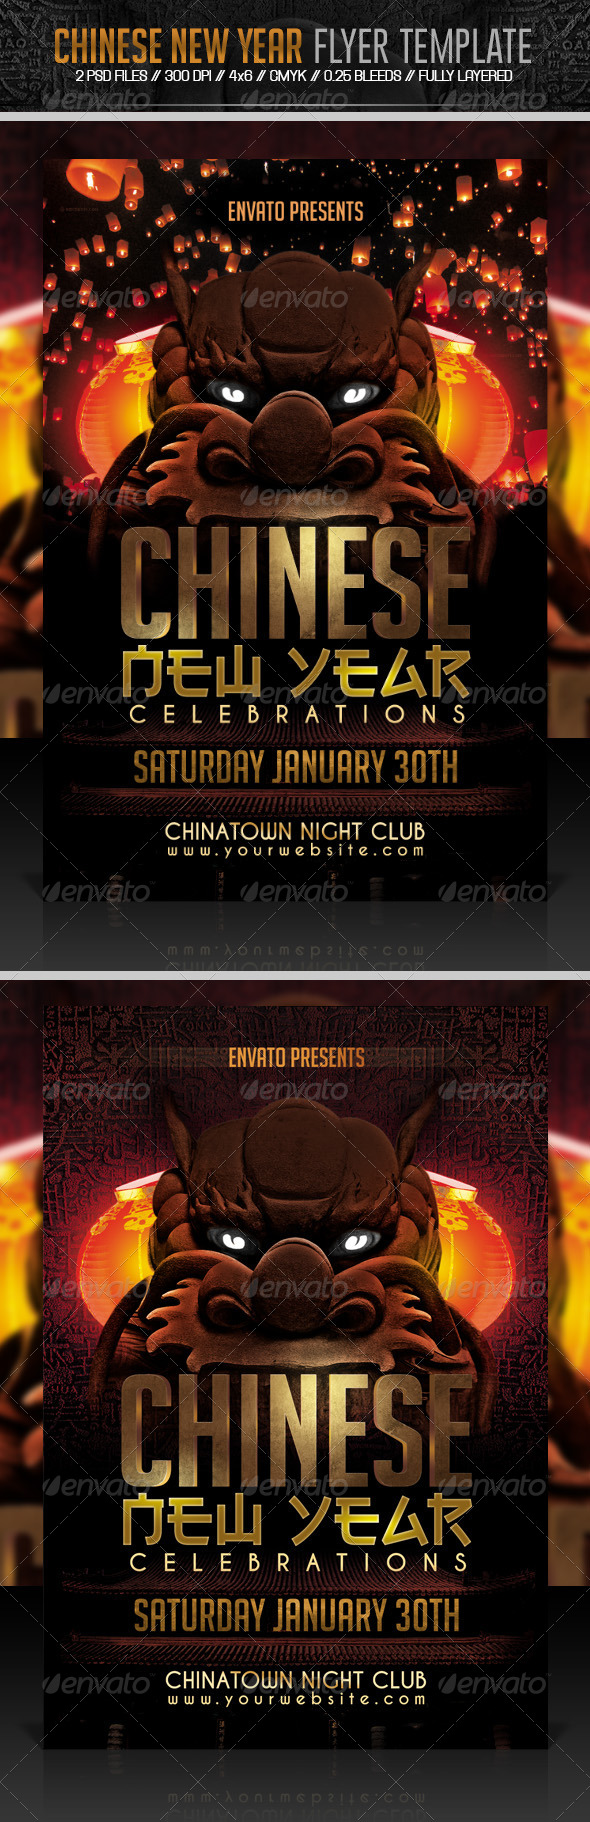 GraphicRiver Chinese New Year Flyer Template 6592340